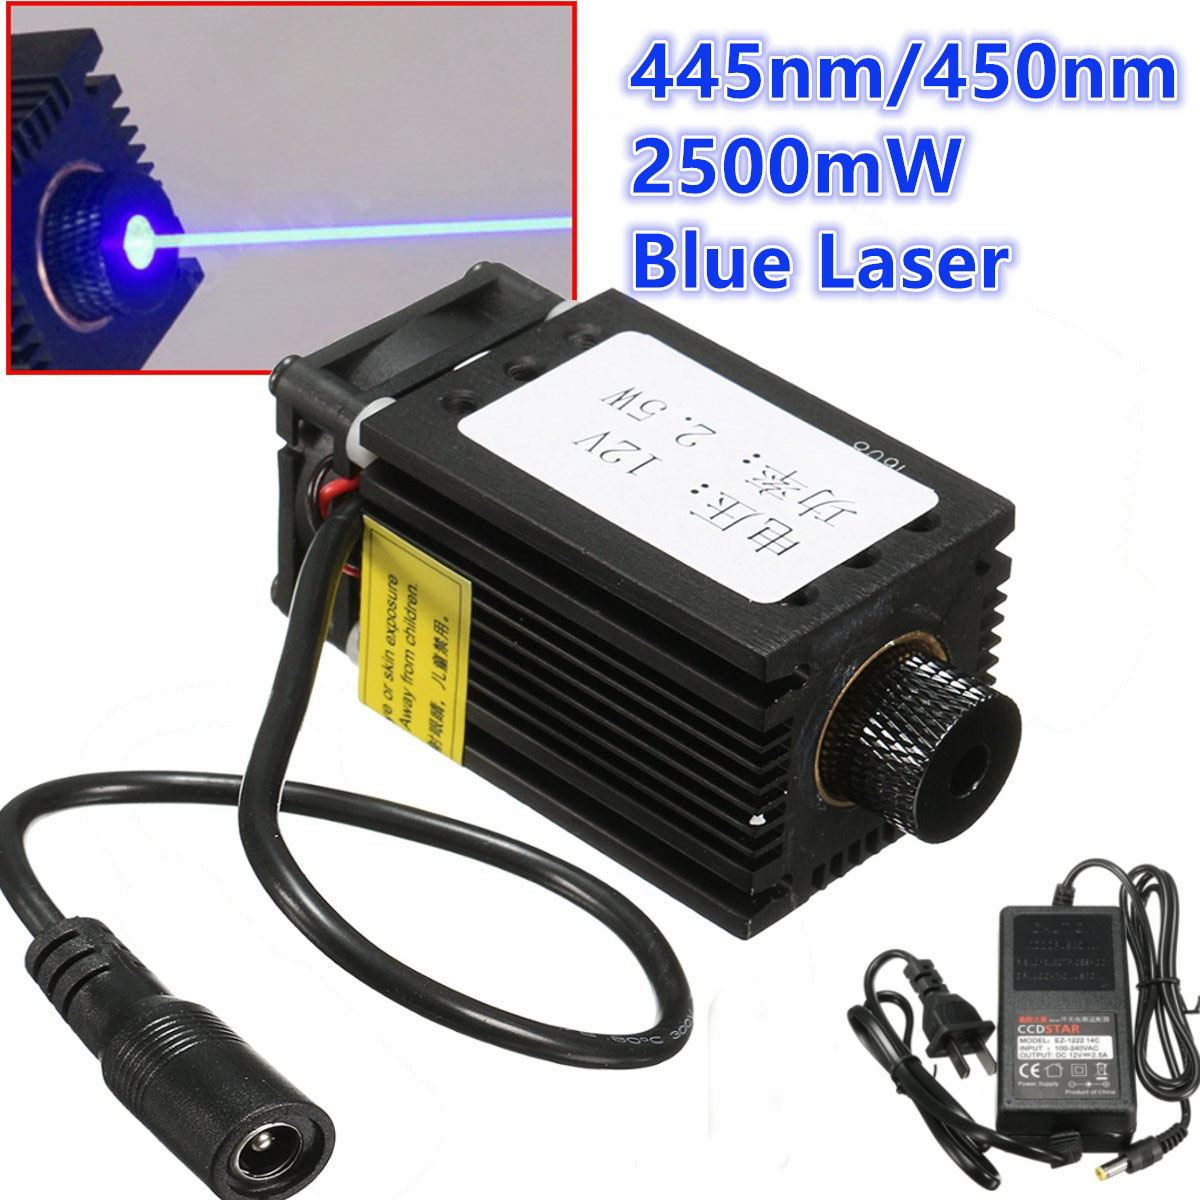 2.5W 2500mW 445nm 450nm Blue Laser Module For CNC Laser Engraving Machine With Adaptor 5w laser module ttl mini laser engraving machine 445nm 450nm blue laser head with adapter free goggles